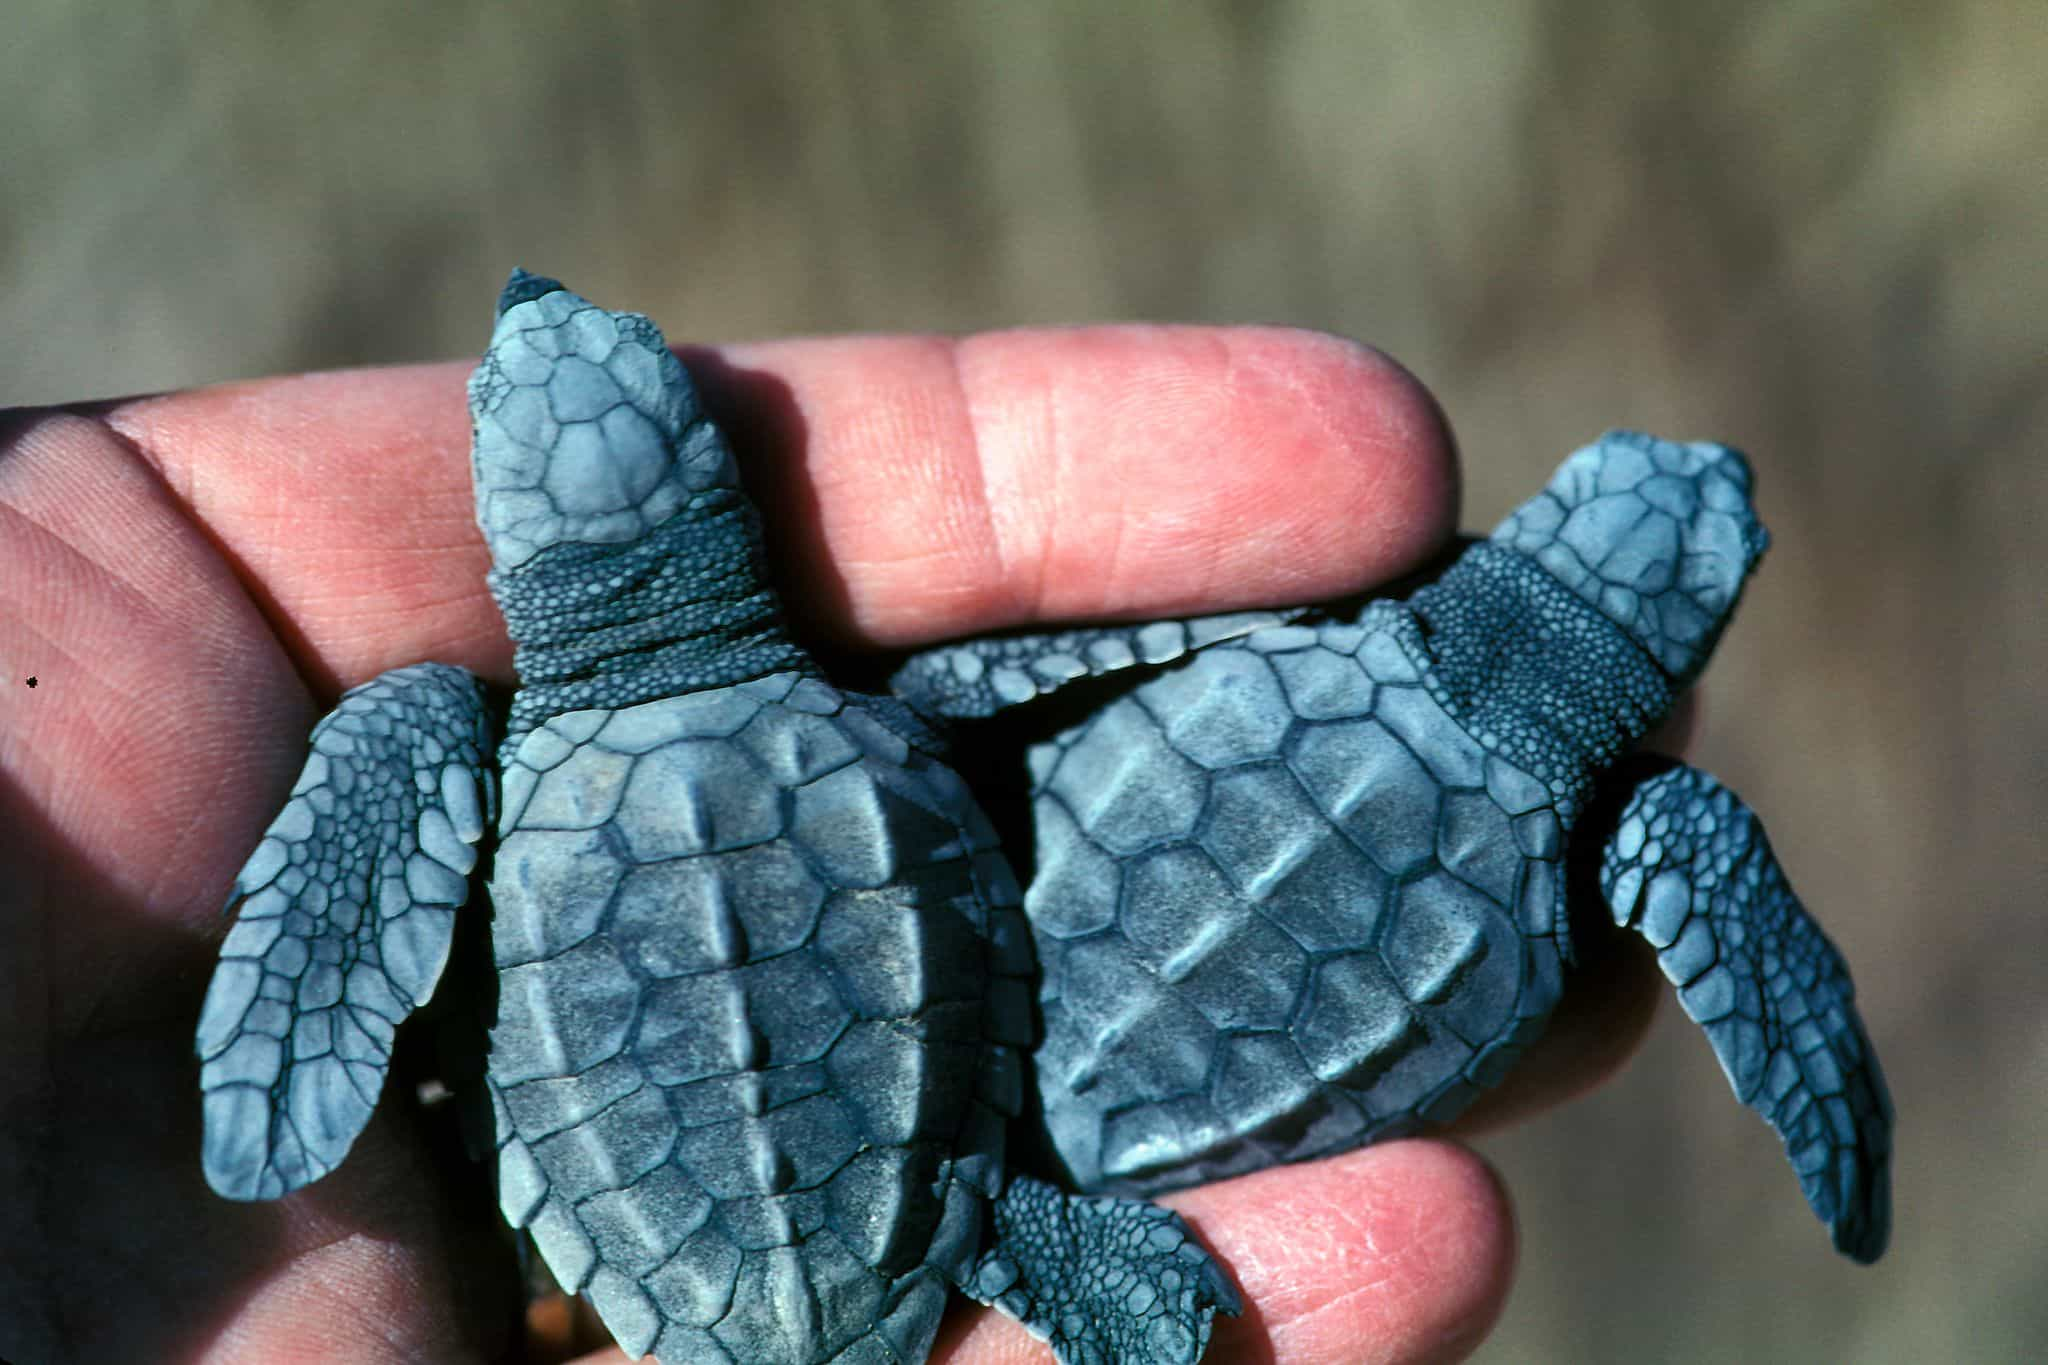 Two Baby Turtles